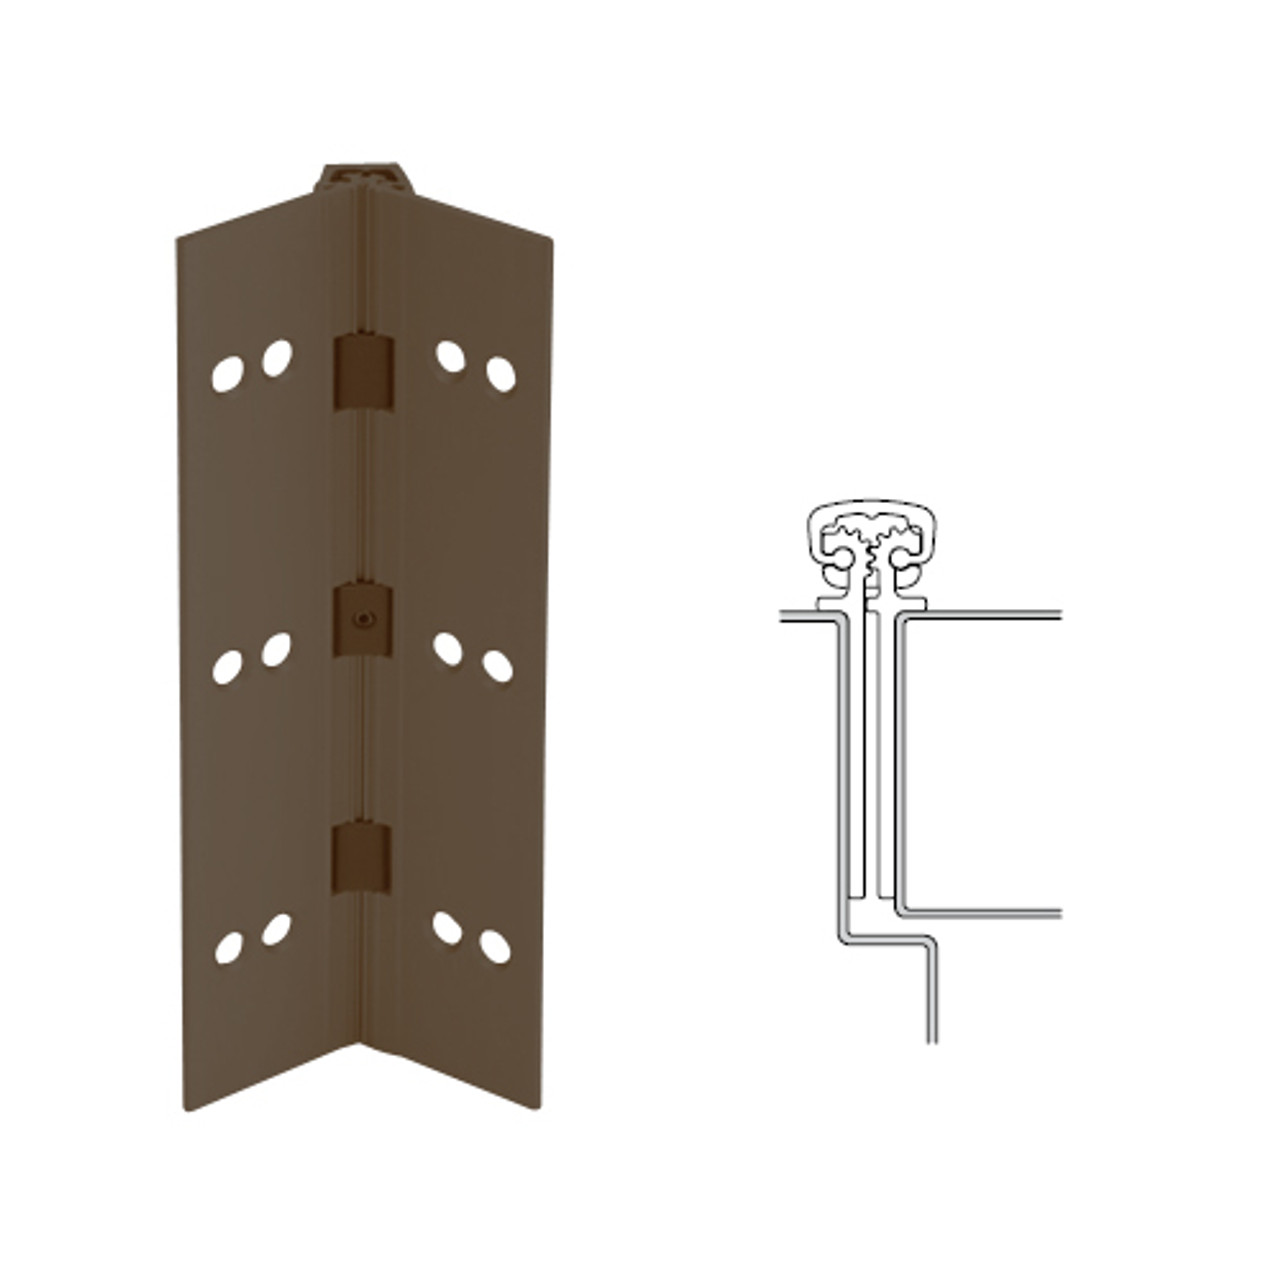 027XY-313AN-95-SECWDWD IVES Full Mortise Continuous Geared Hinges with Security Screws - Hex Pin Drive in Dark Bronze Anodized